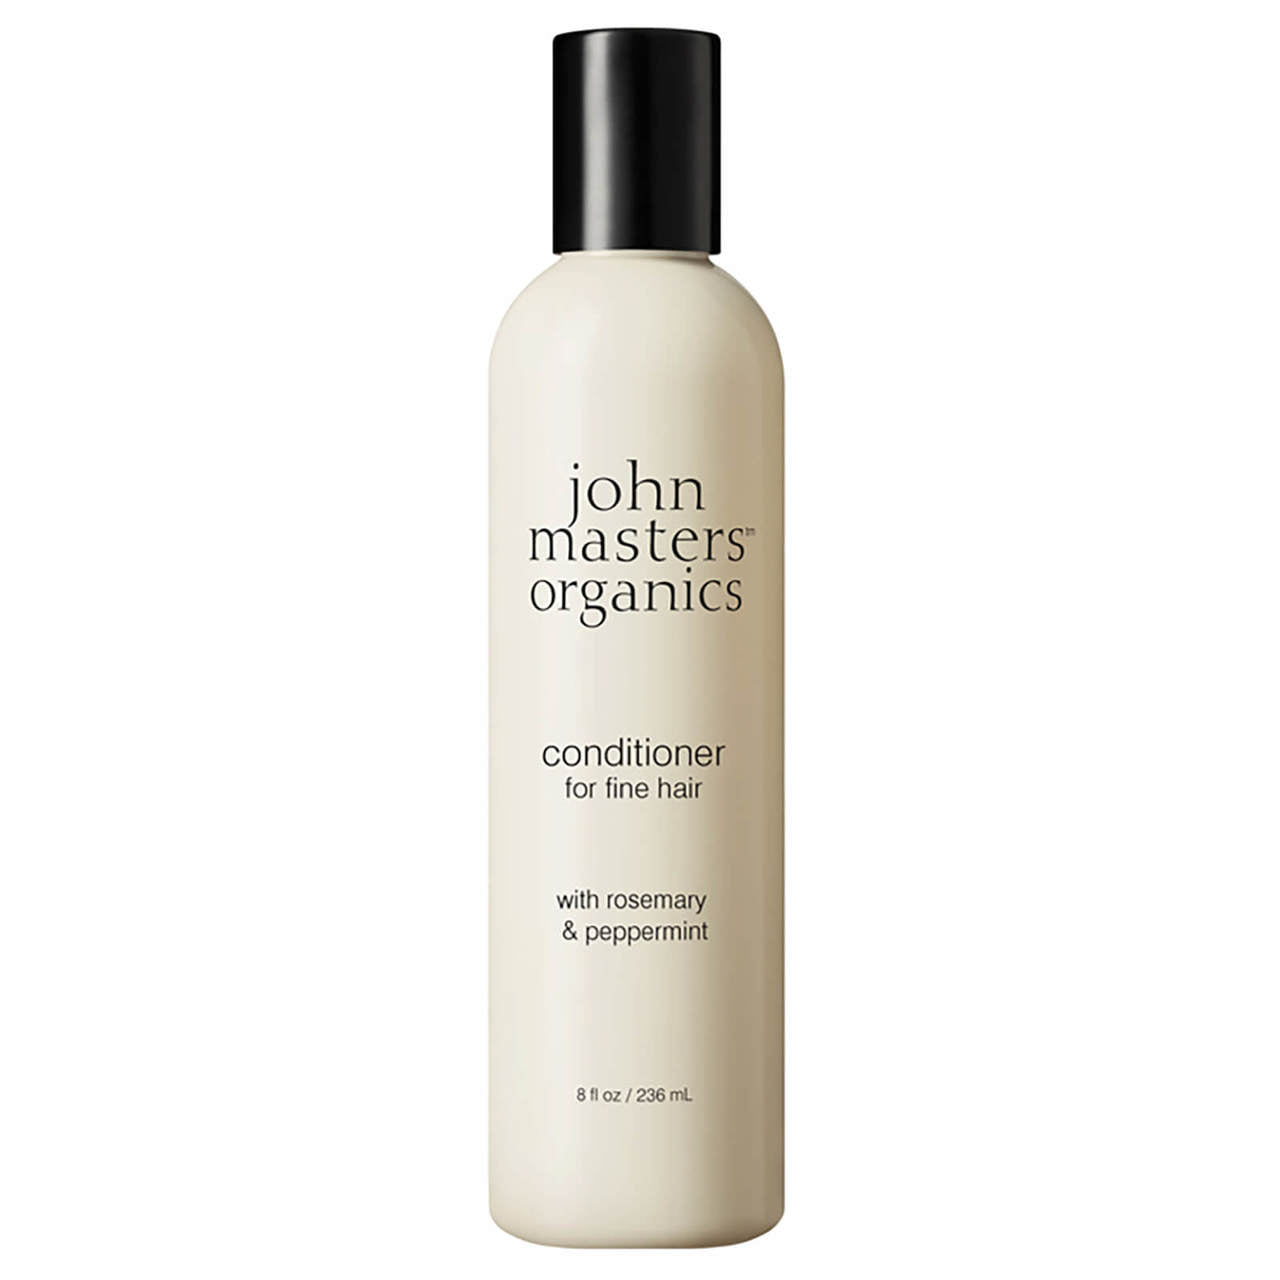 John Masters Organics - Conditioner for Fine Hair with Rosemary & Peppermint